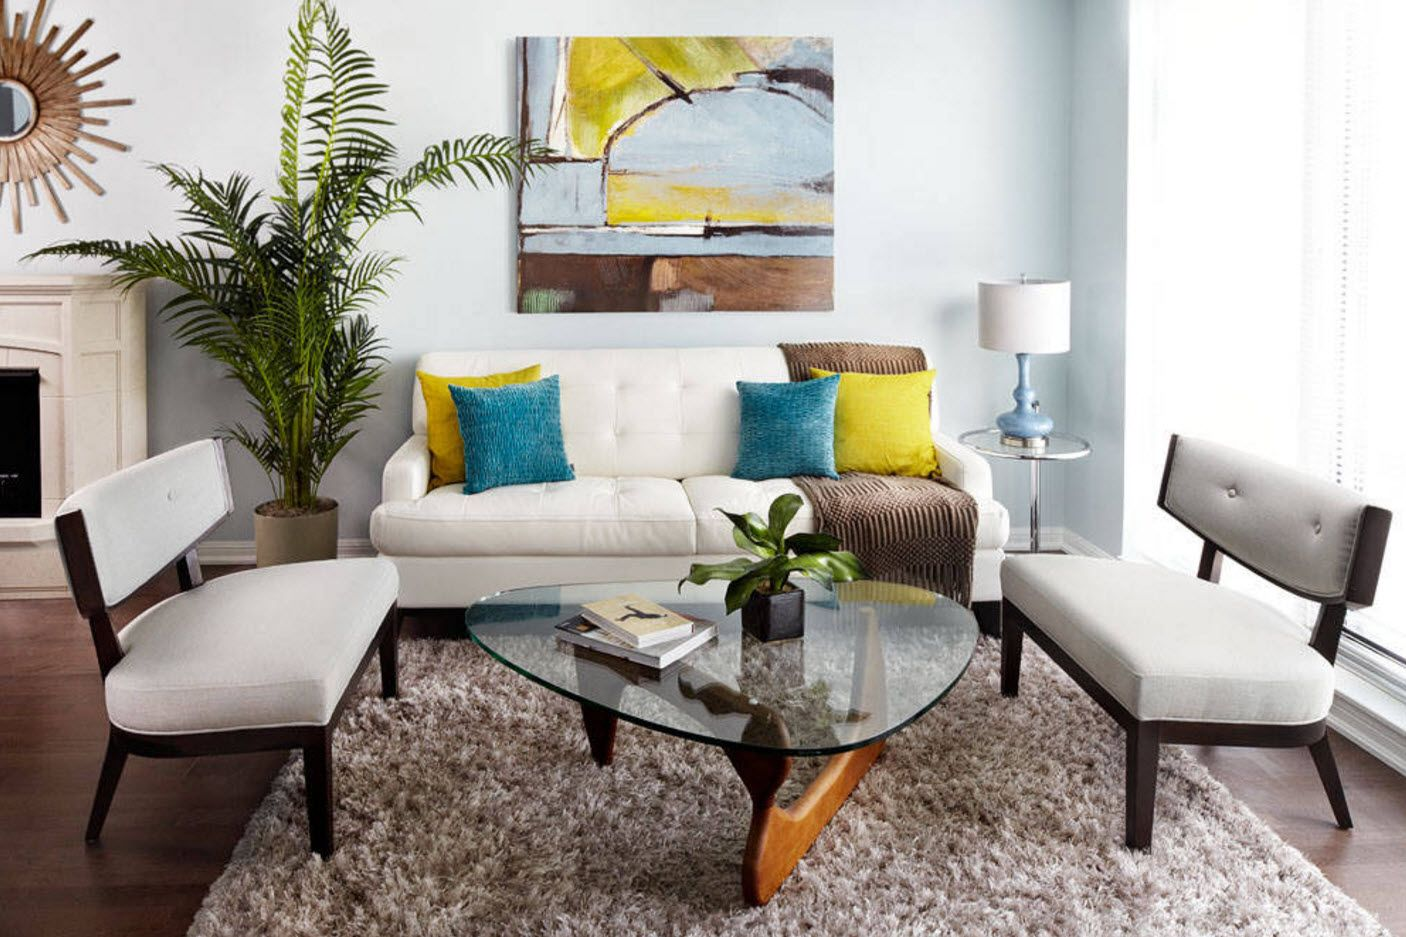 One Bedroom Apartment Design Trends with Photos. Nice glass coffee table on the wooden base